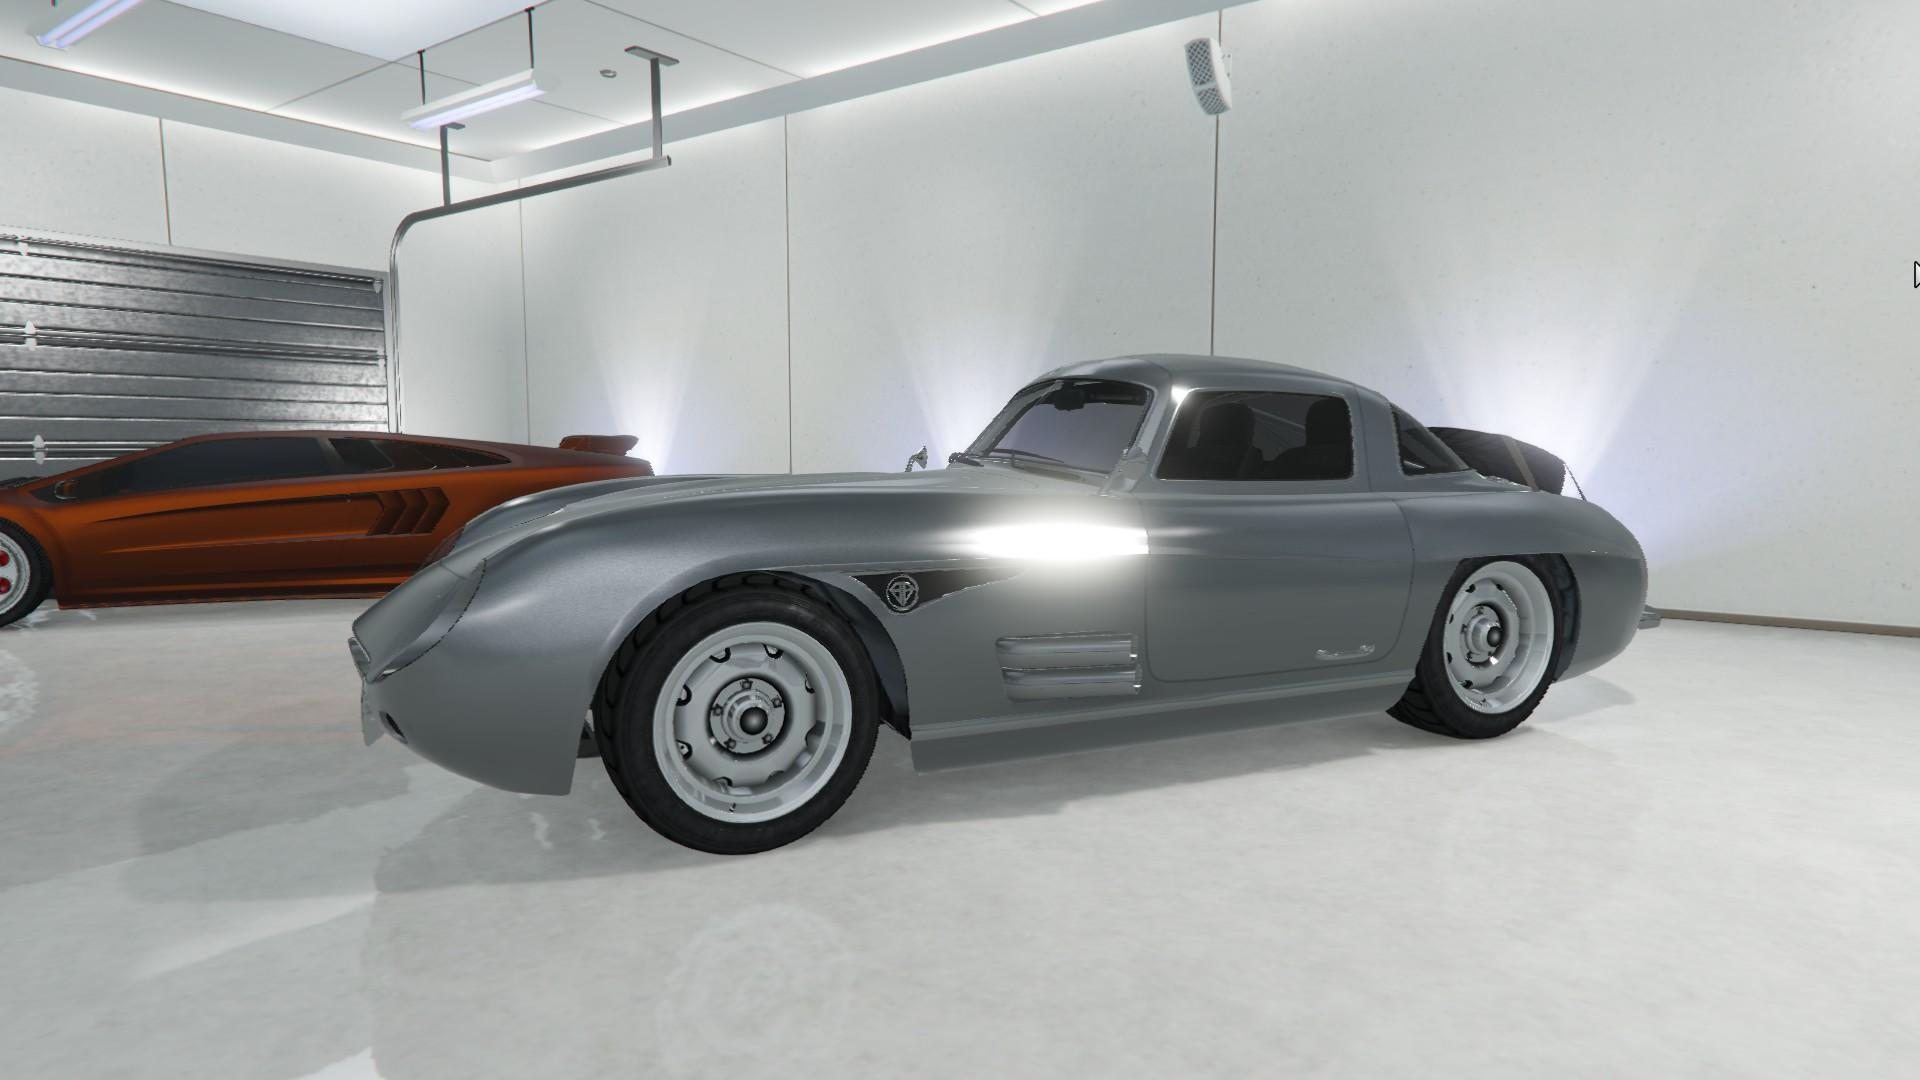 Stirling GT - SPORTS CLASSIC